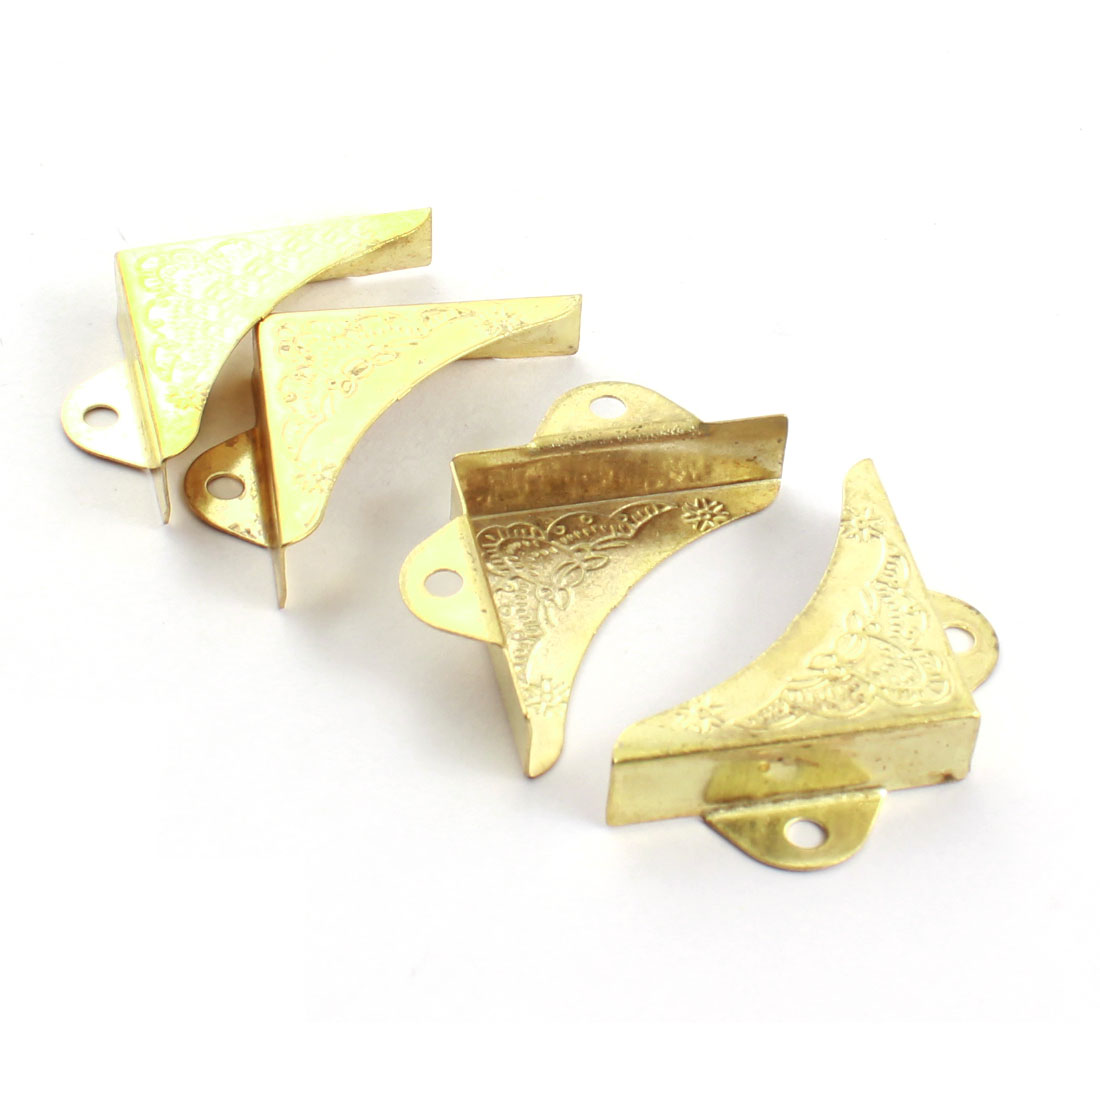 4pcs Right Angle Hardware Furniture Closet Cabinet Corner Protector Bracket Gold Tone